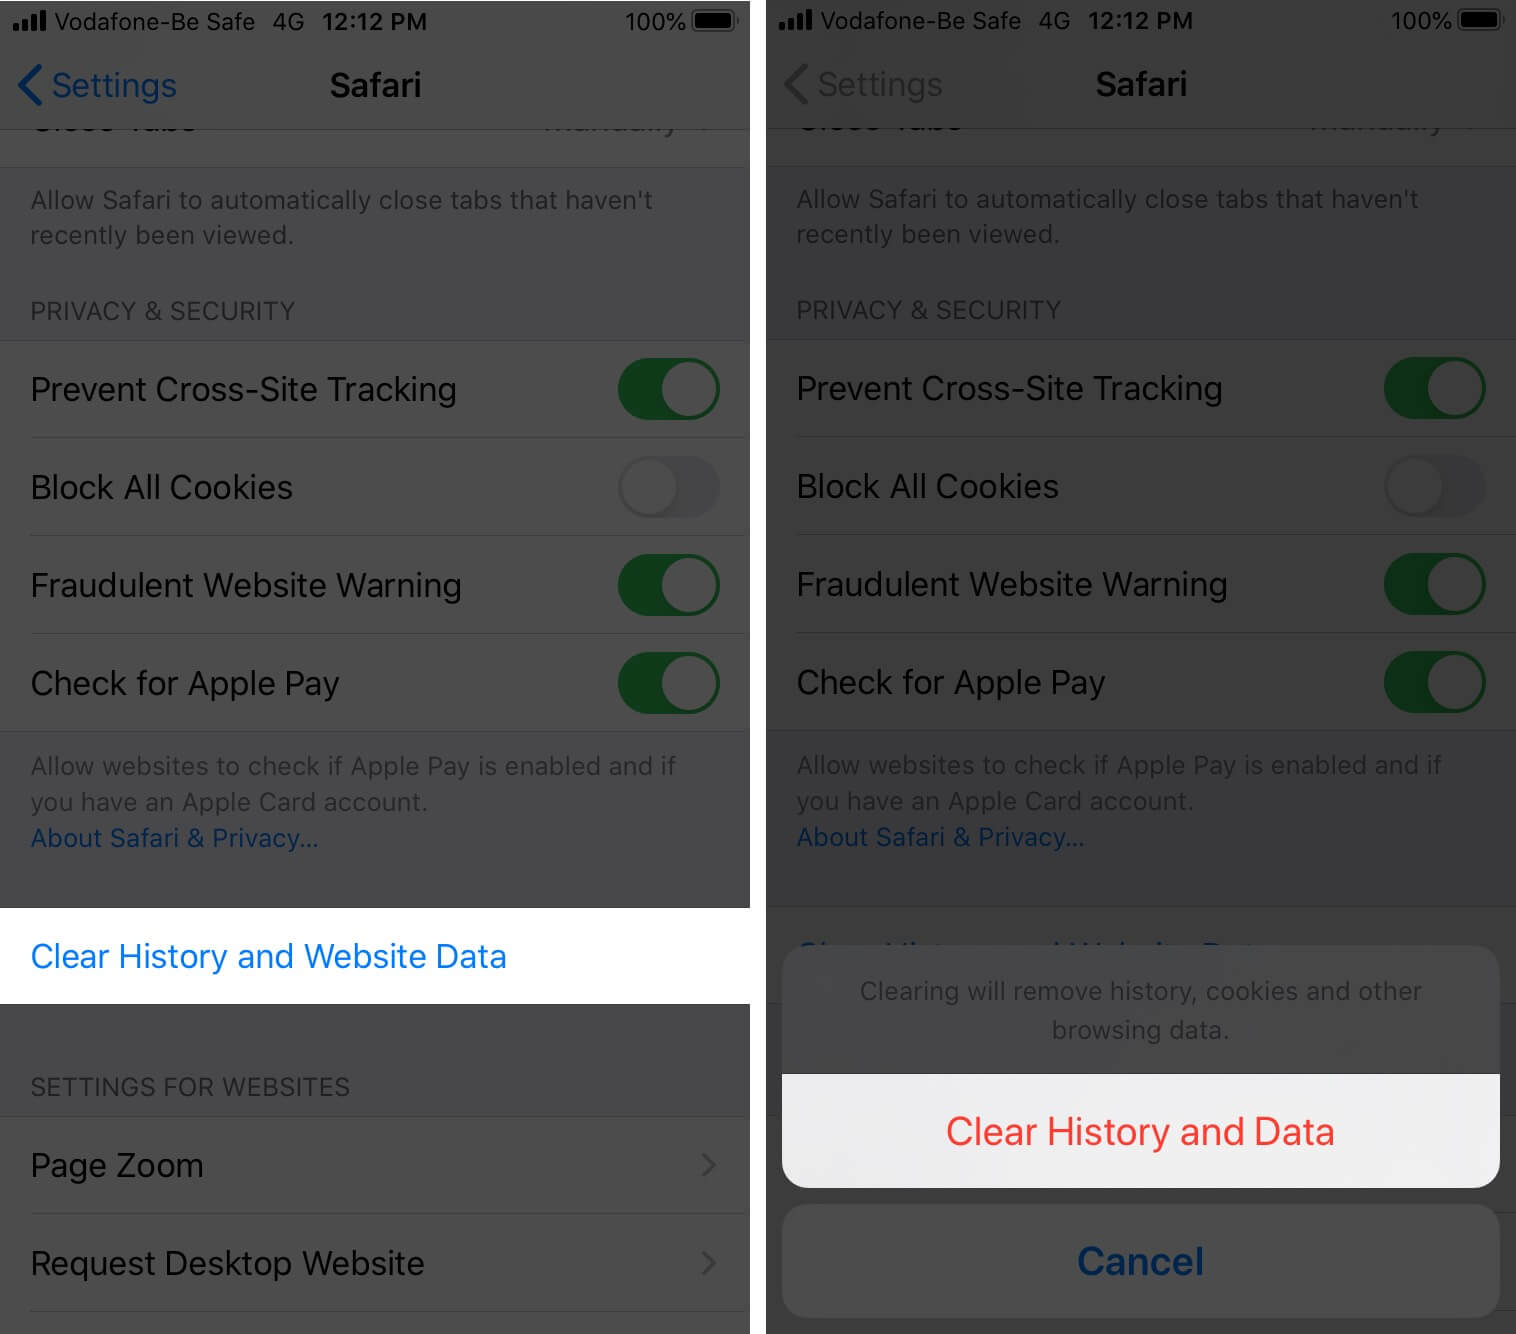 Tap on Clear History and Website Data to Clear Safari Browsing History on iPhone